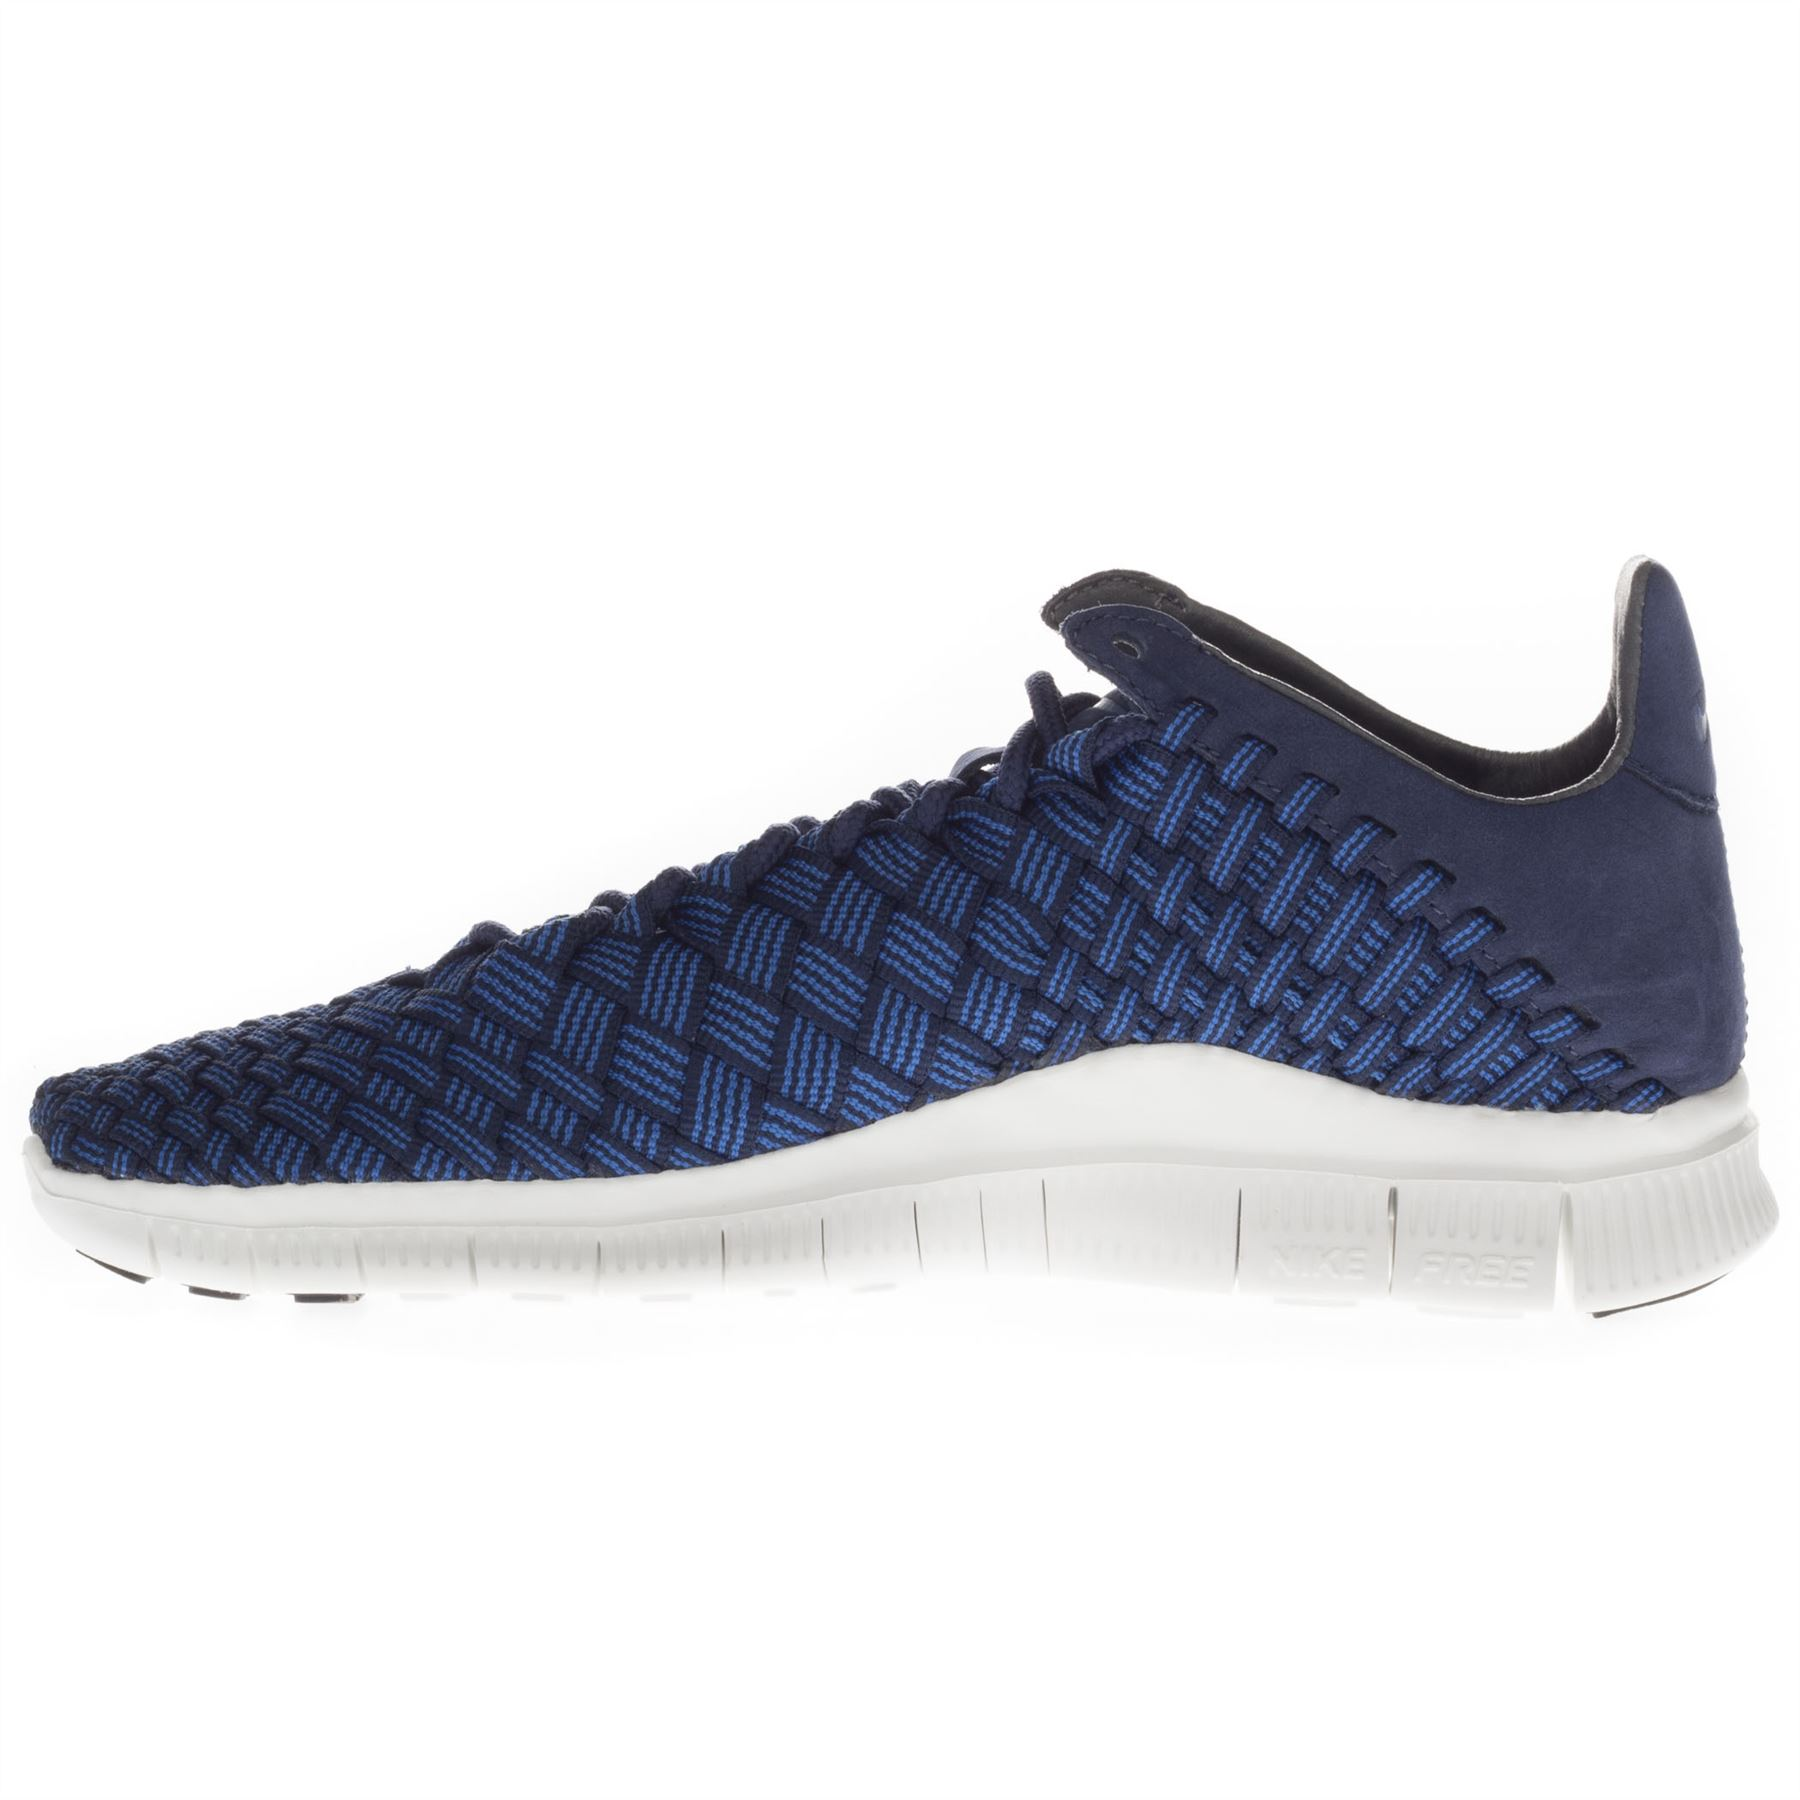 buy online 1873c f9a11 Nike-Men-039-s-Free-Inneva-Woven-Low-